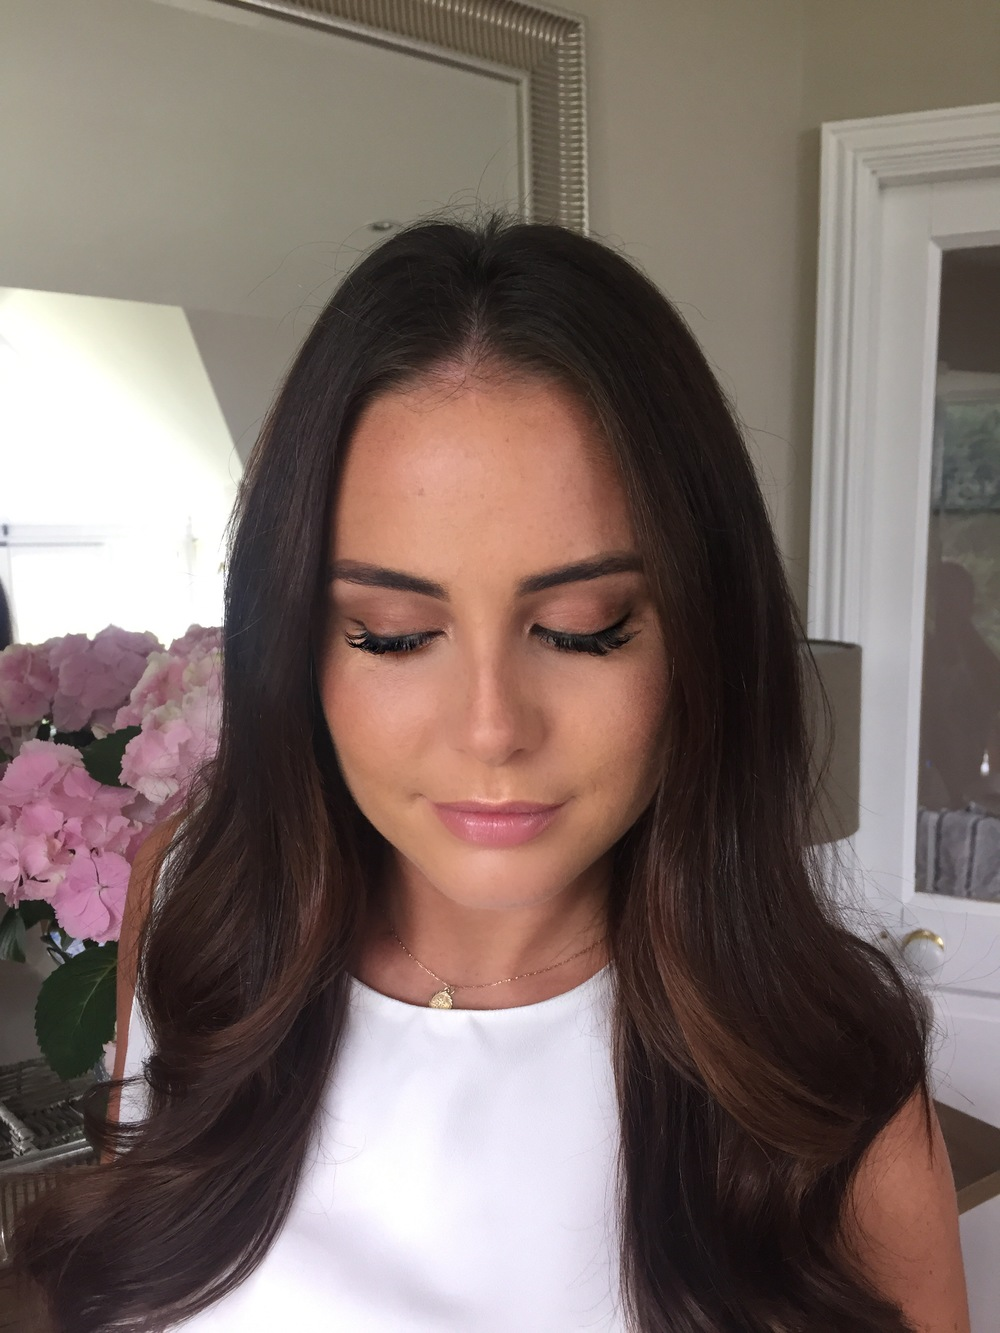 40f382497c0 Eyelash Extensions-The Good, The Bad, The Can't Live Without Them ...